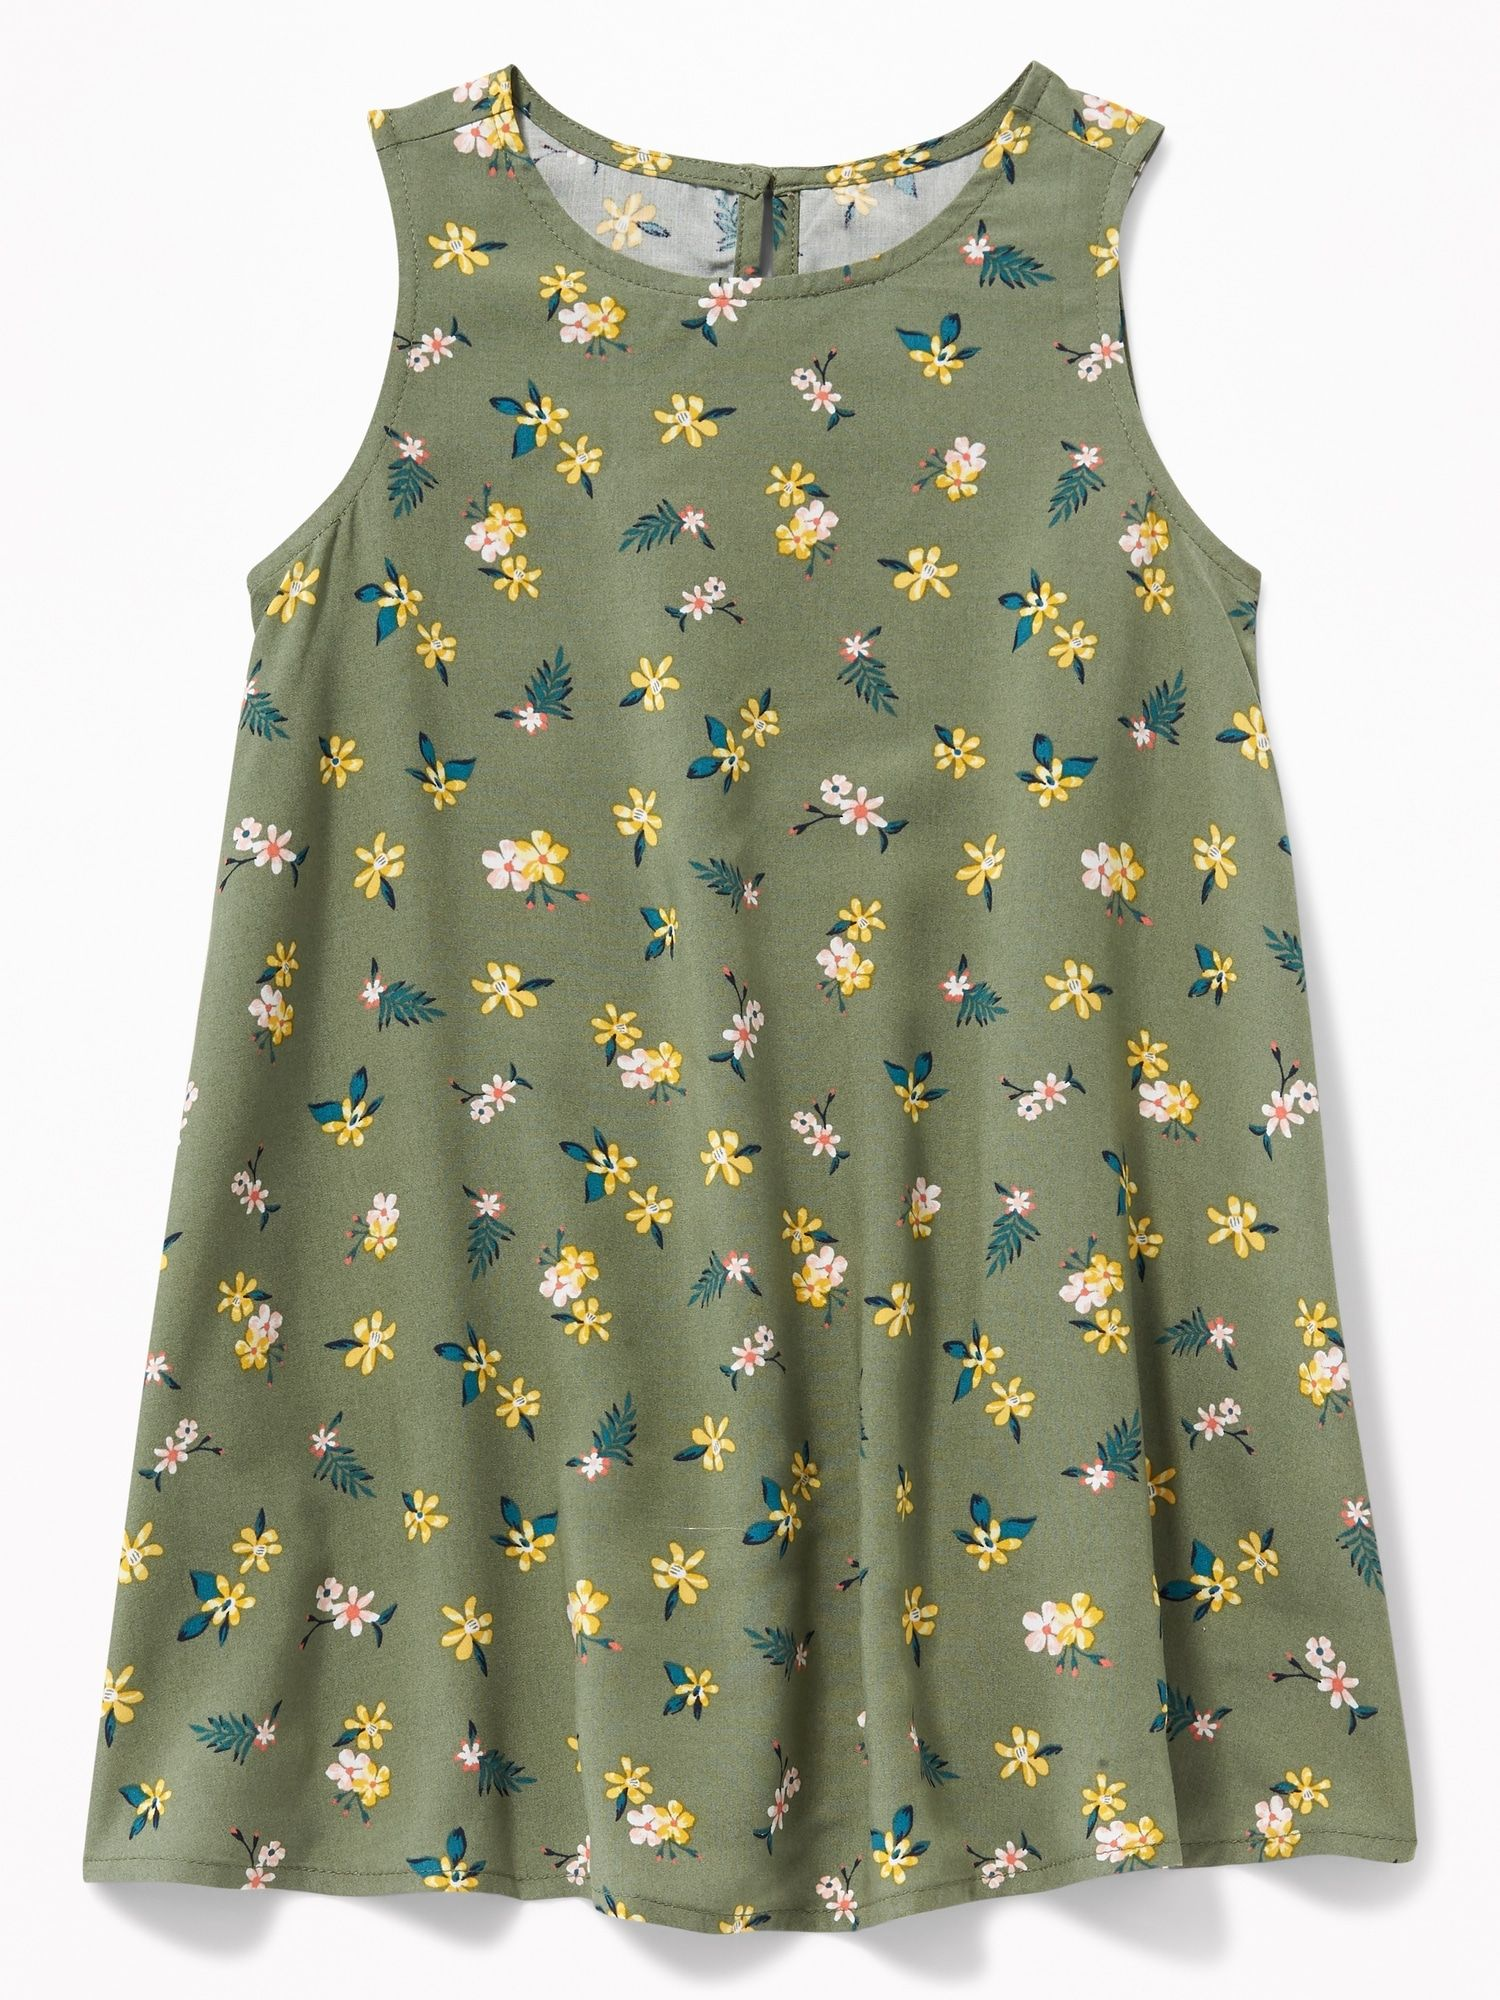 dfda93073 Printed Sleeveless Swing Dress for Toddler Girls | Old navy ...